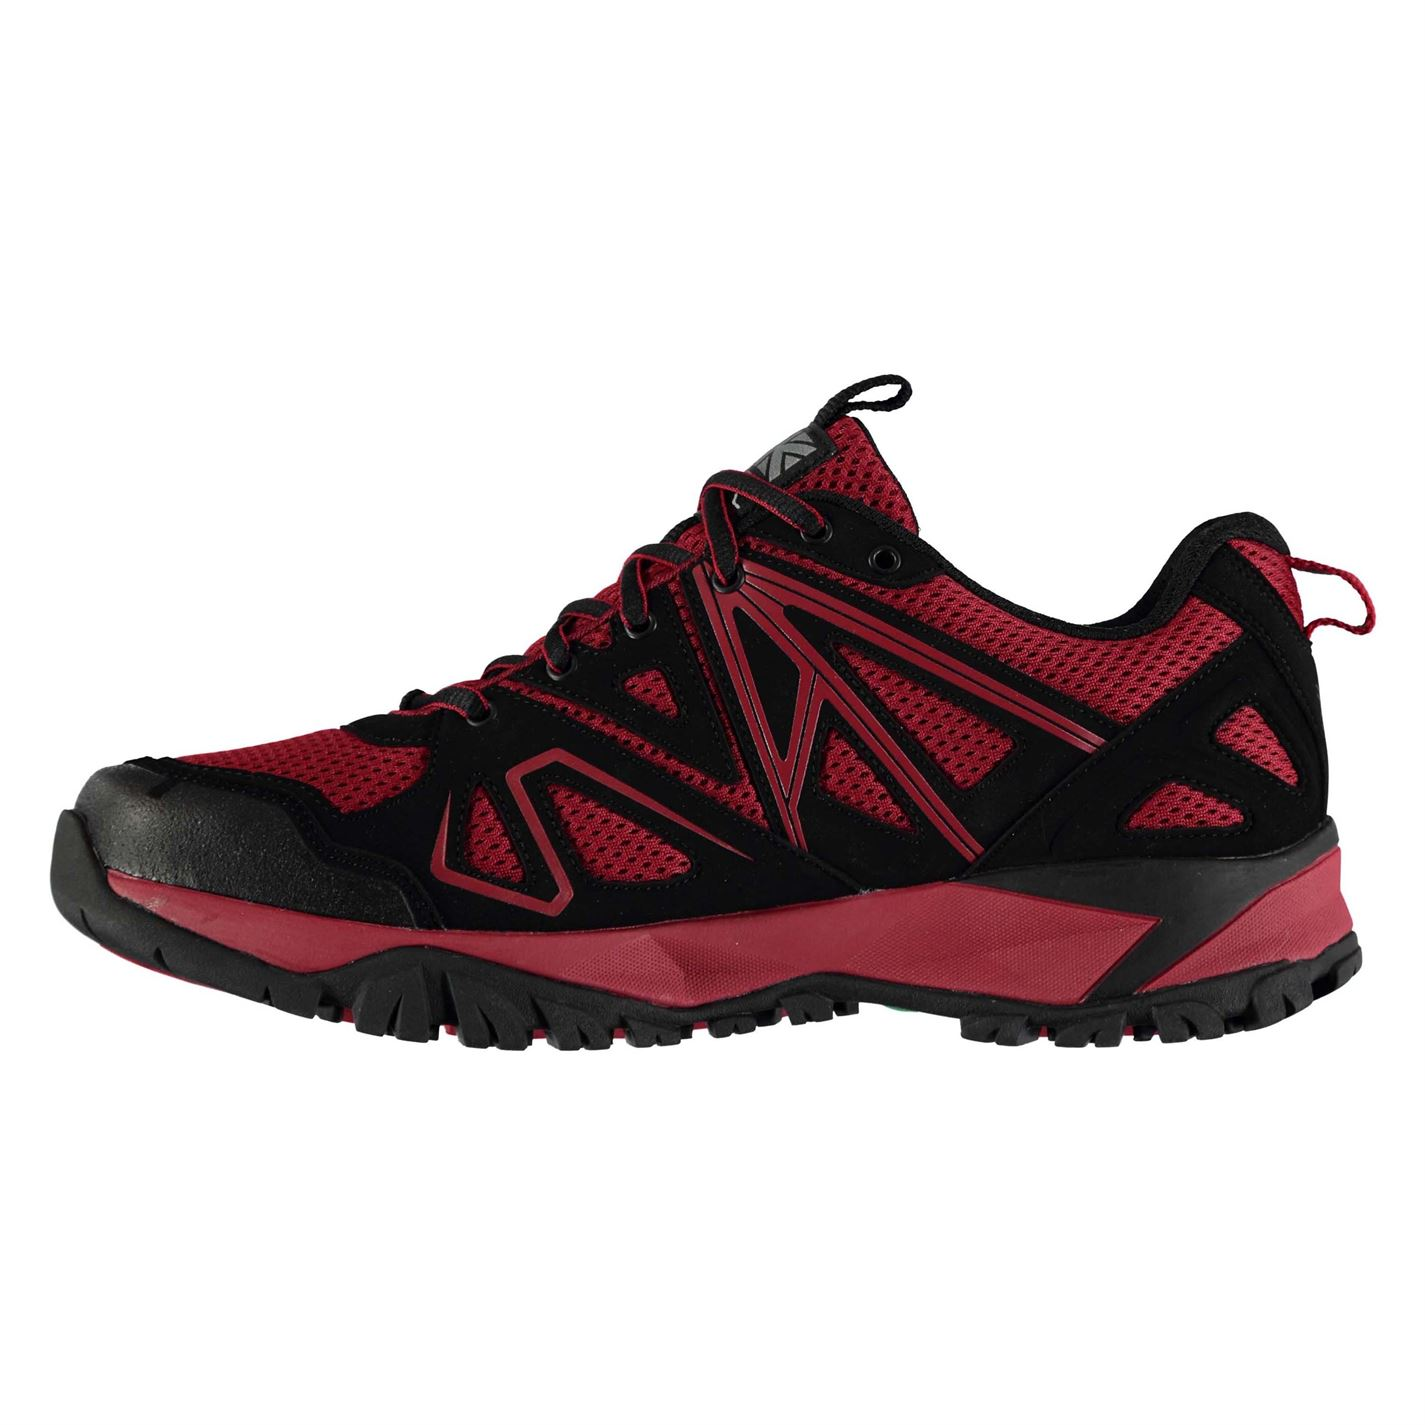 Karrimor Mens Surge Walking Shoes Non Waterproof Lace Up Breathable Lightweight